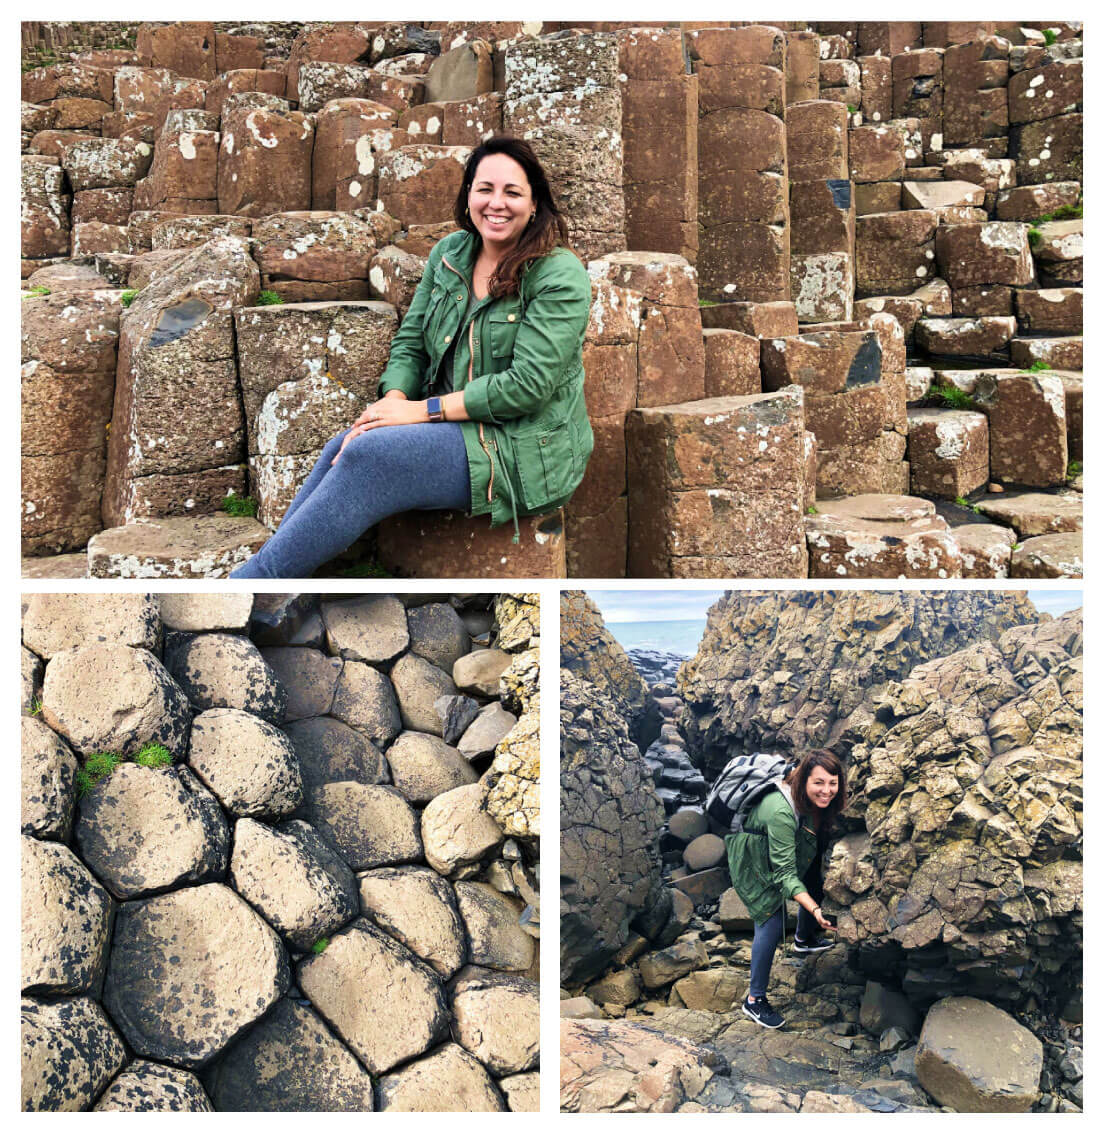 Things to do in Northern Ireland - Giant's Causeway